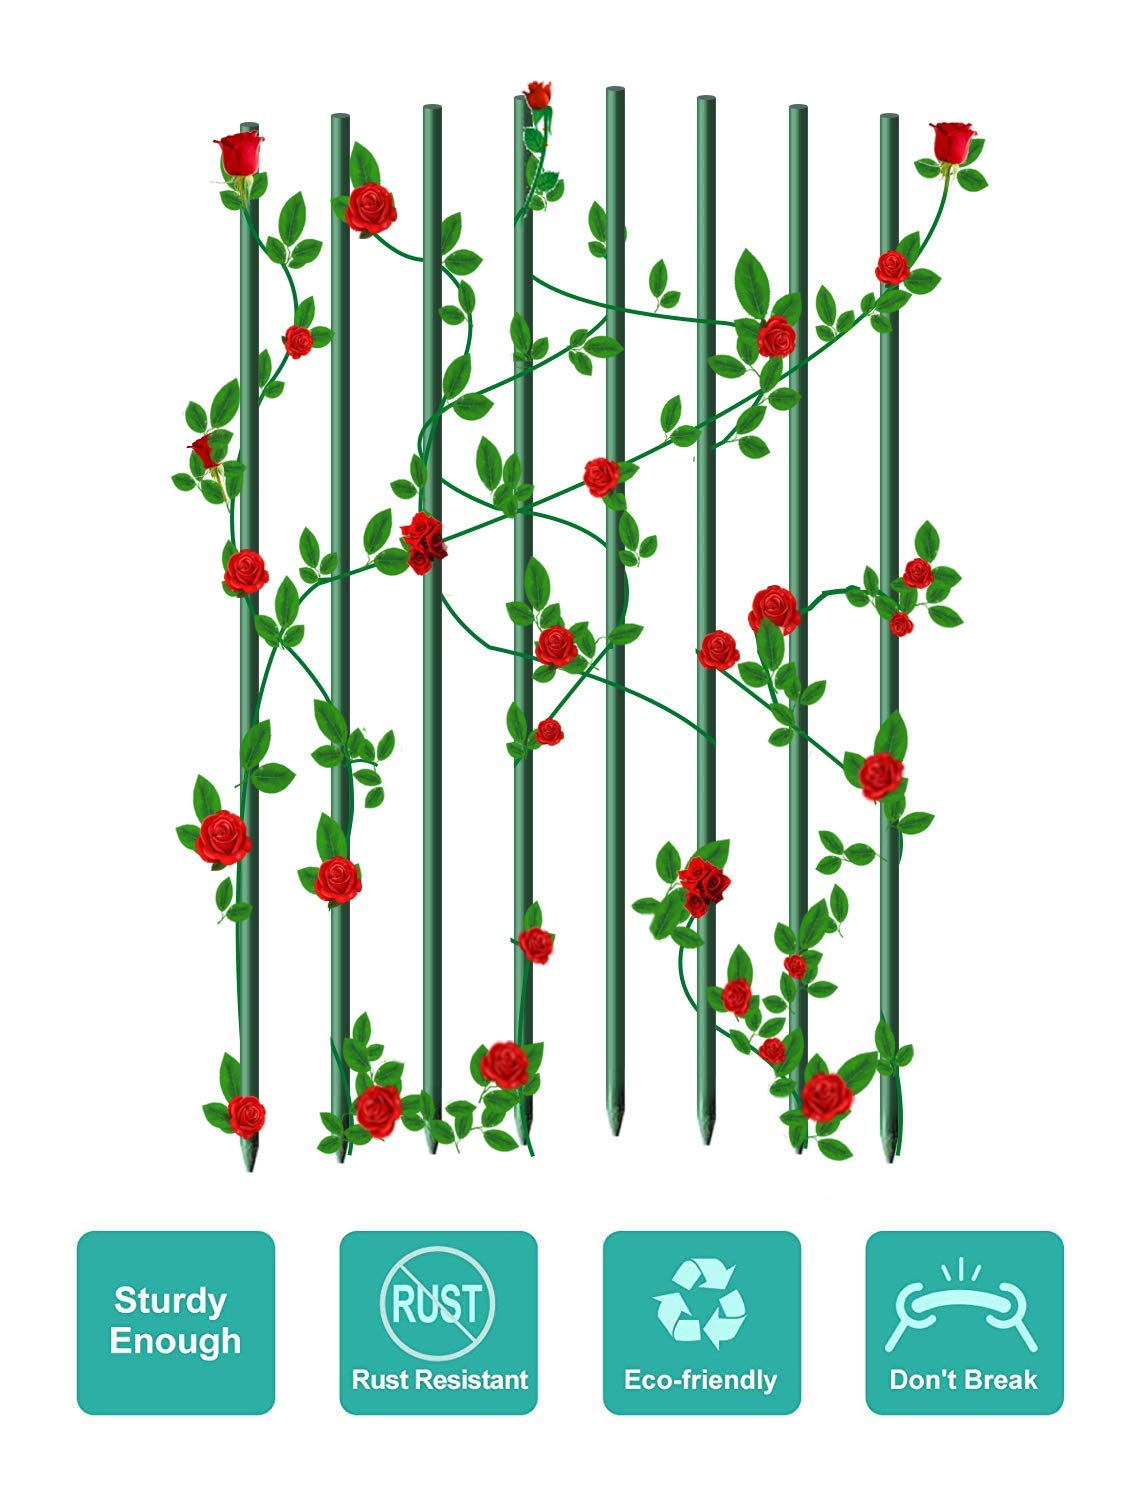 EcoStake Garden Stakes 3/4'' Dia 8 FT FRP Plant Supporting Stakes for Climbing Tomato Cucumber Strawberry Bean Tree, Pack of 4, Dark Green